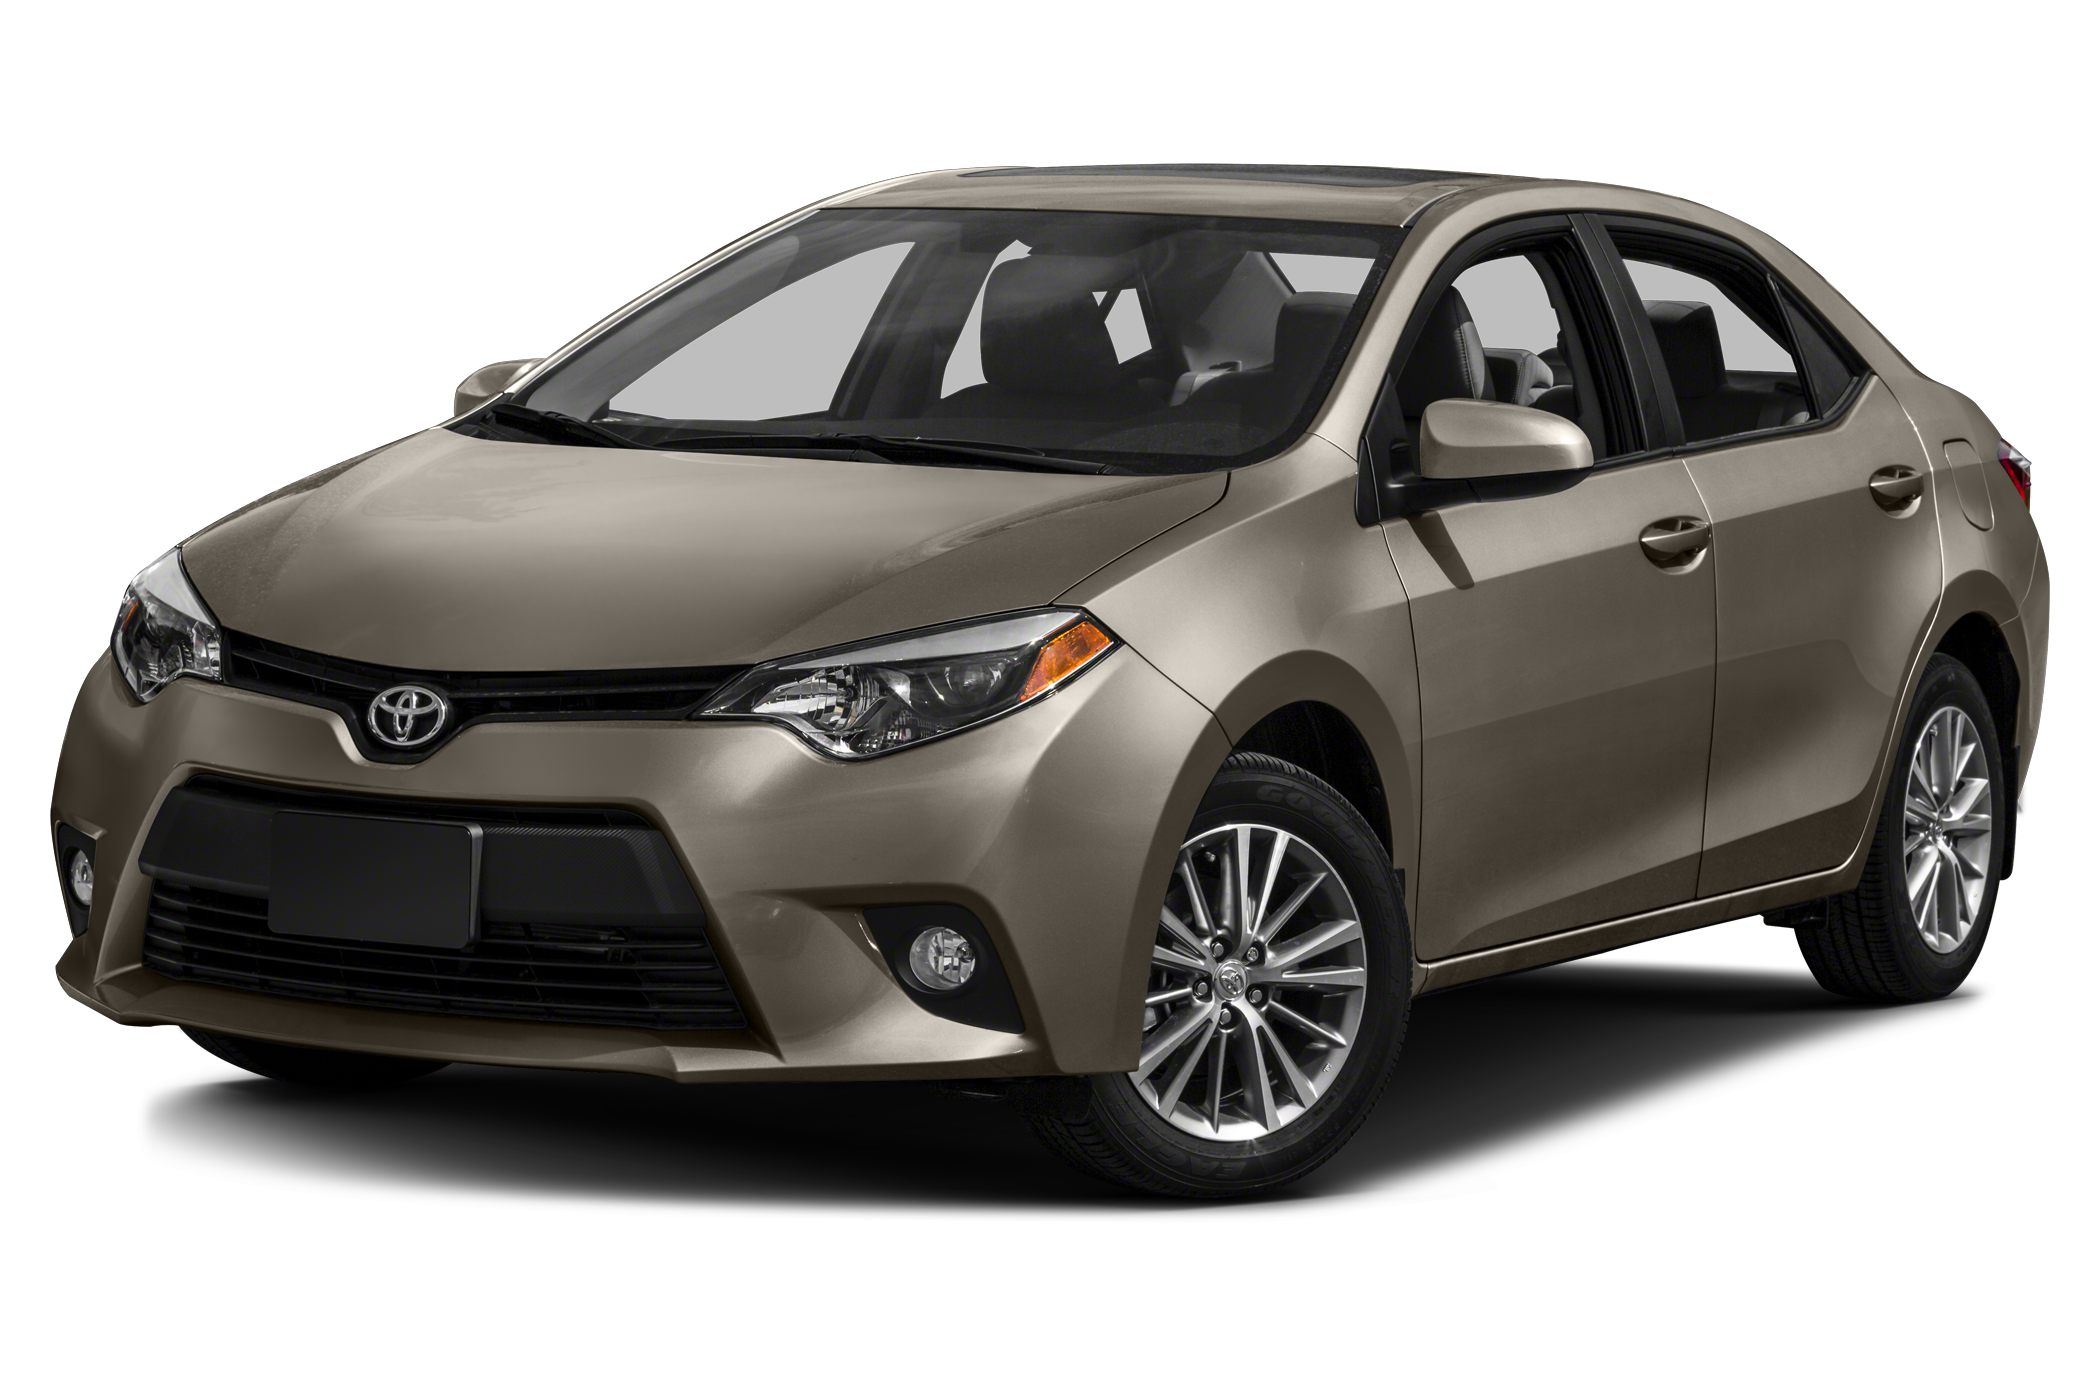 2015 Toyota Corolla L Sedan for sale in Bryan for $18,914 with 0 miles.